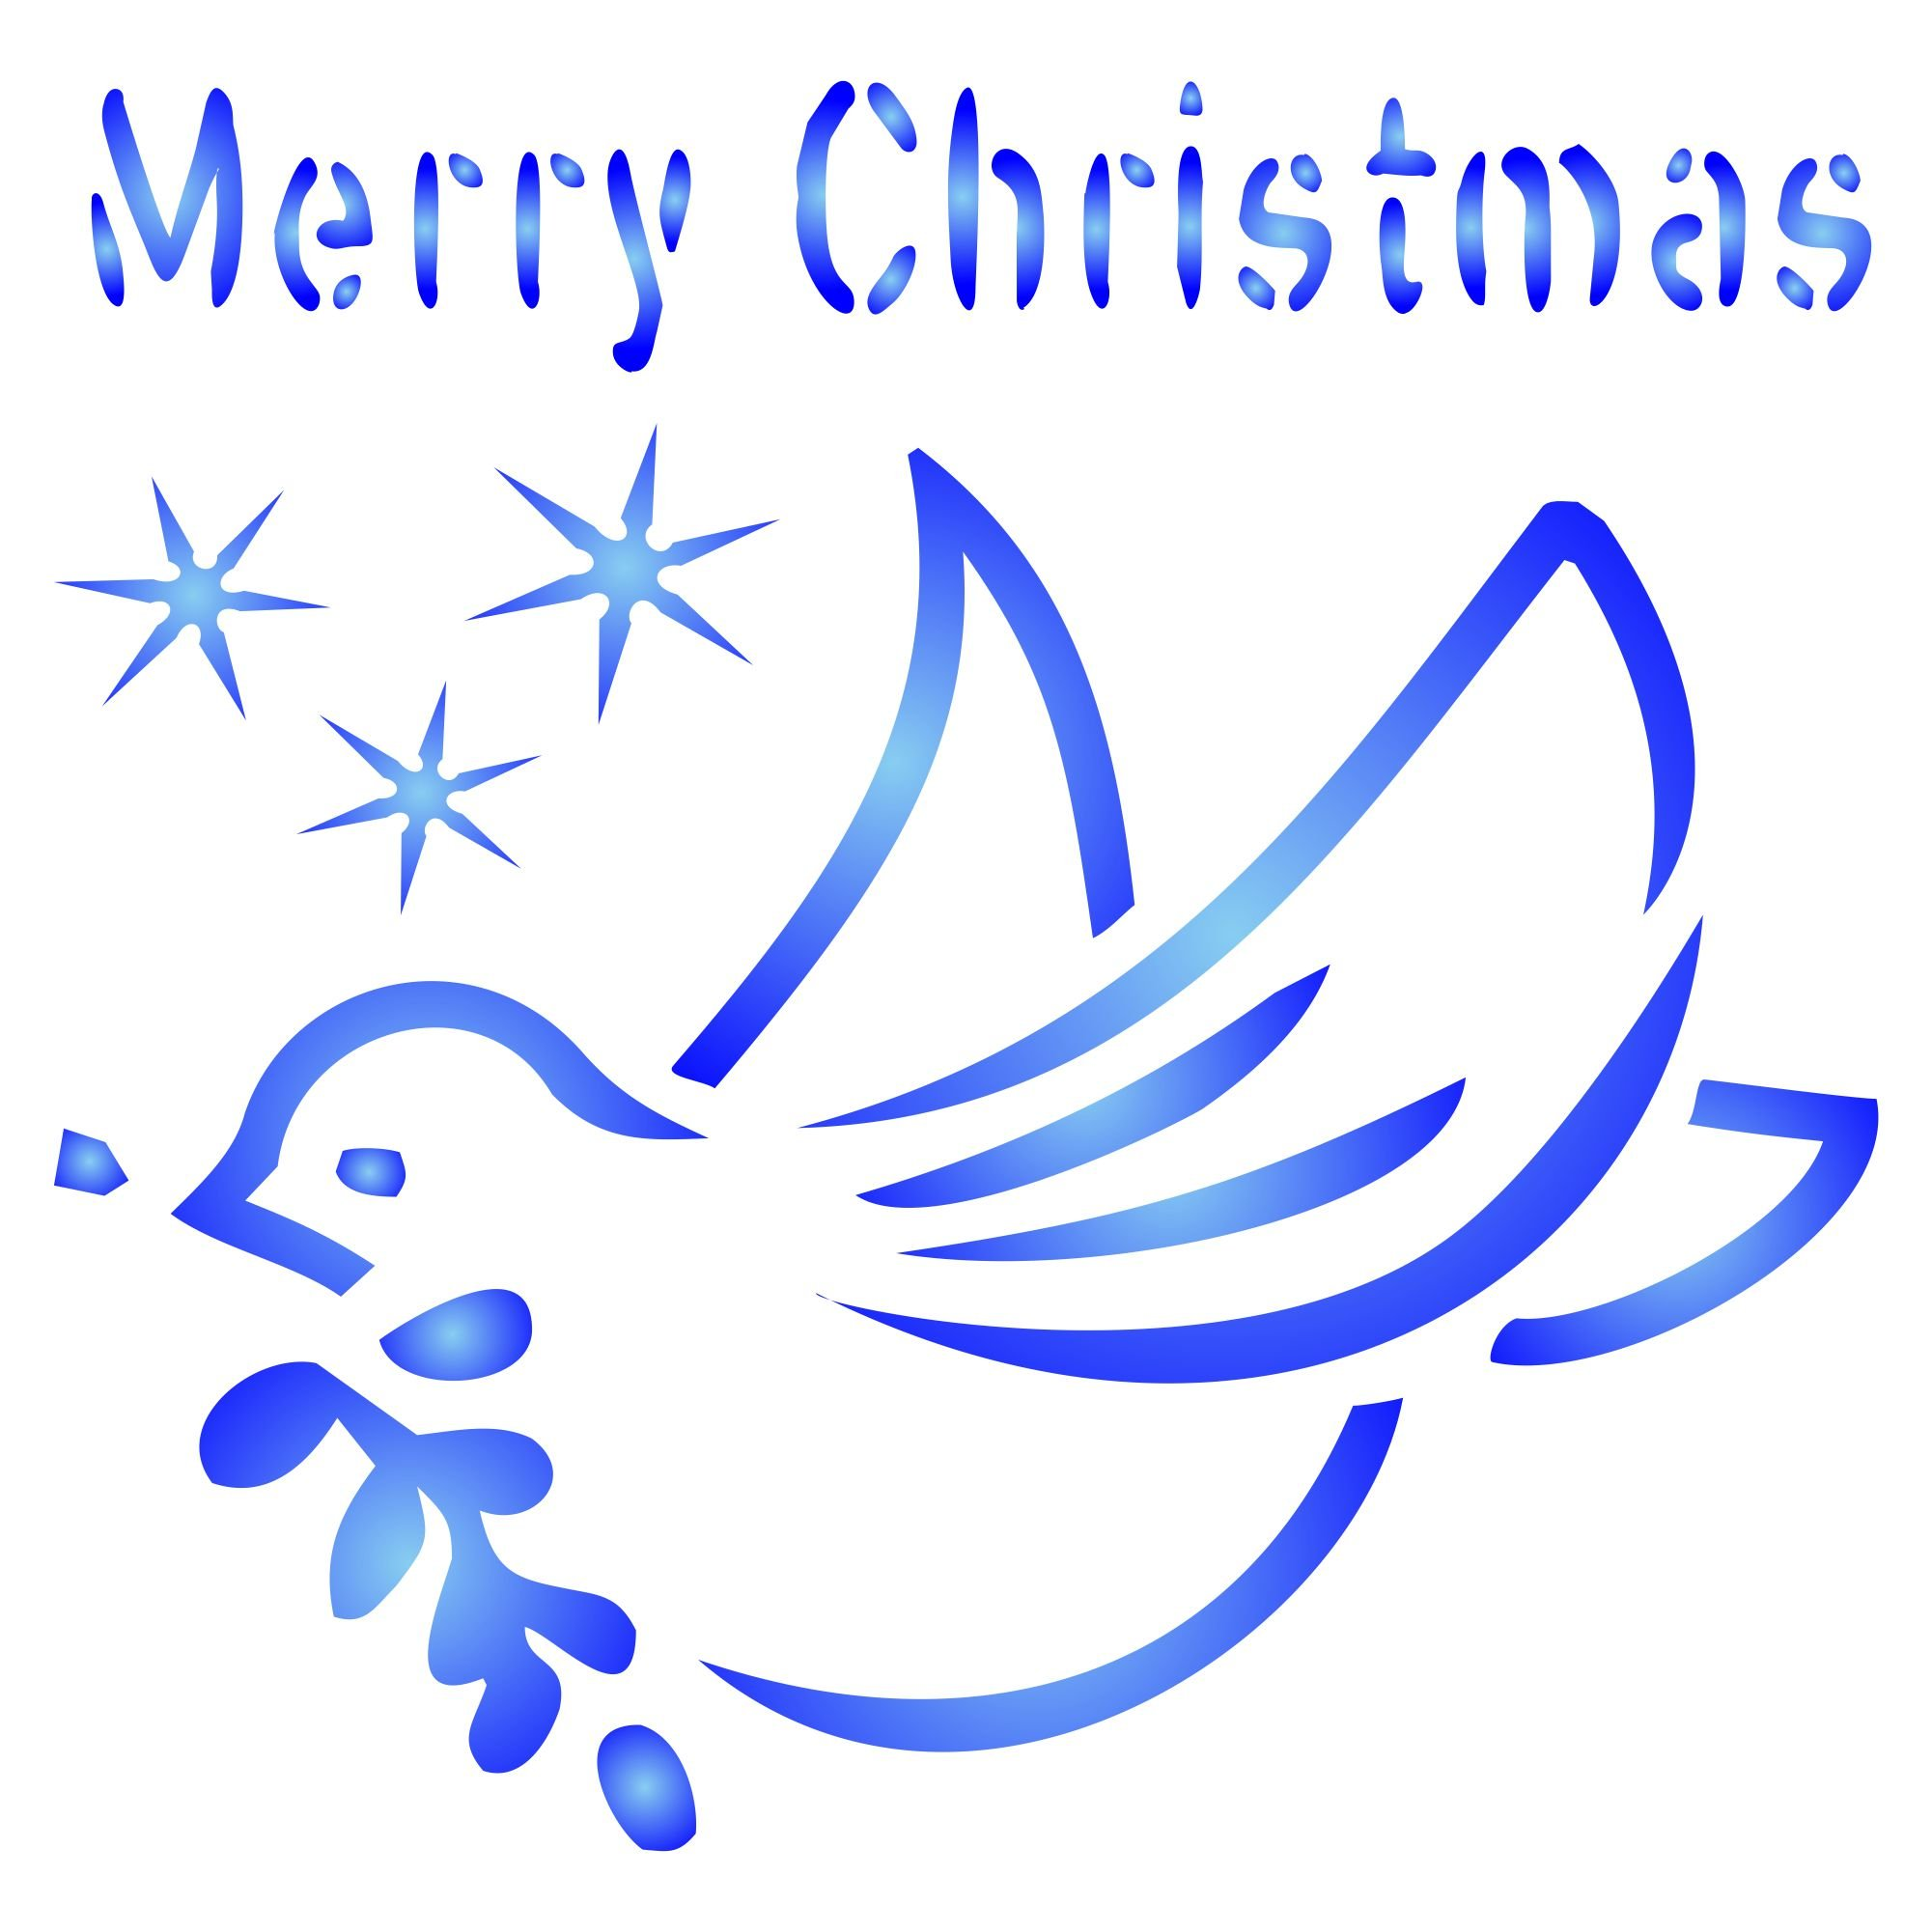 """Christmas Dove Stencil (size 5""""w x 5""""h) Reusable Stencils for Painting - Best Quality Christmas Project Ideas - Use on Walls, Floors, Fabrics, Glass, Wood, Cards, and More…"""